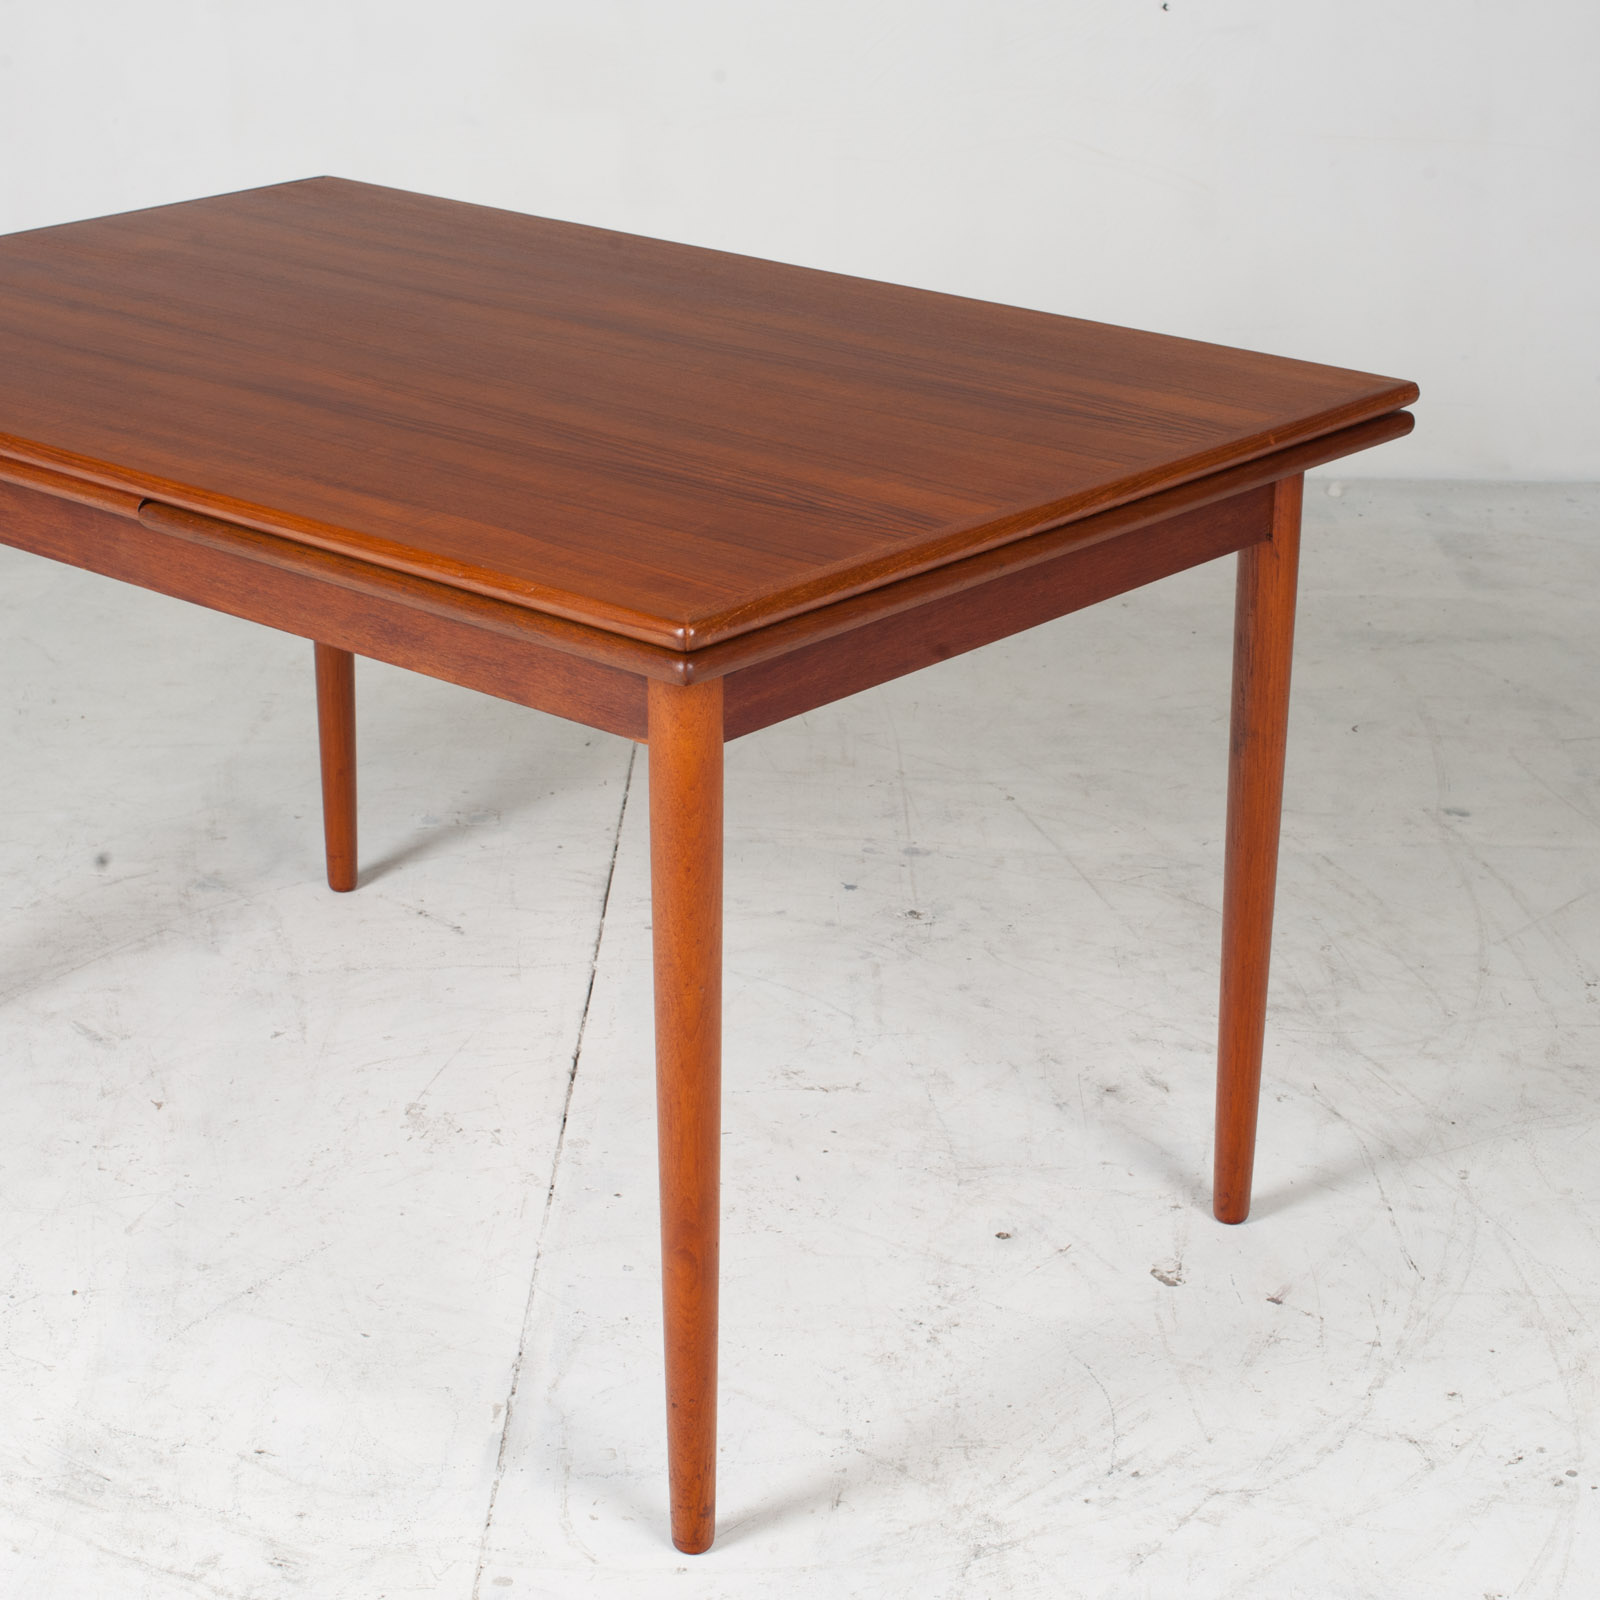 Rectangular Dining Table In Teak With Concealed Extentions 1960s Denmark4